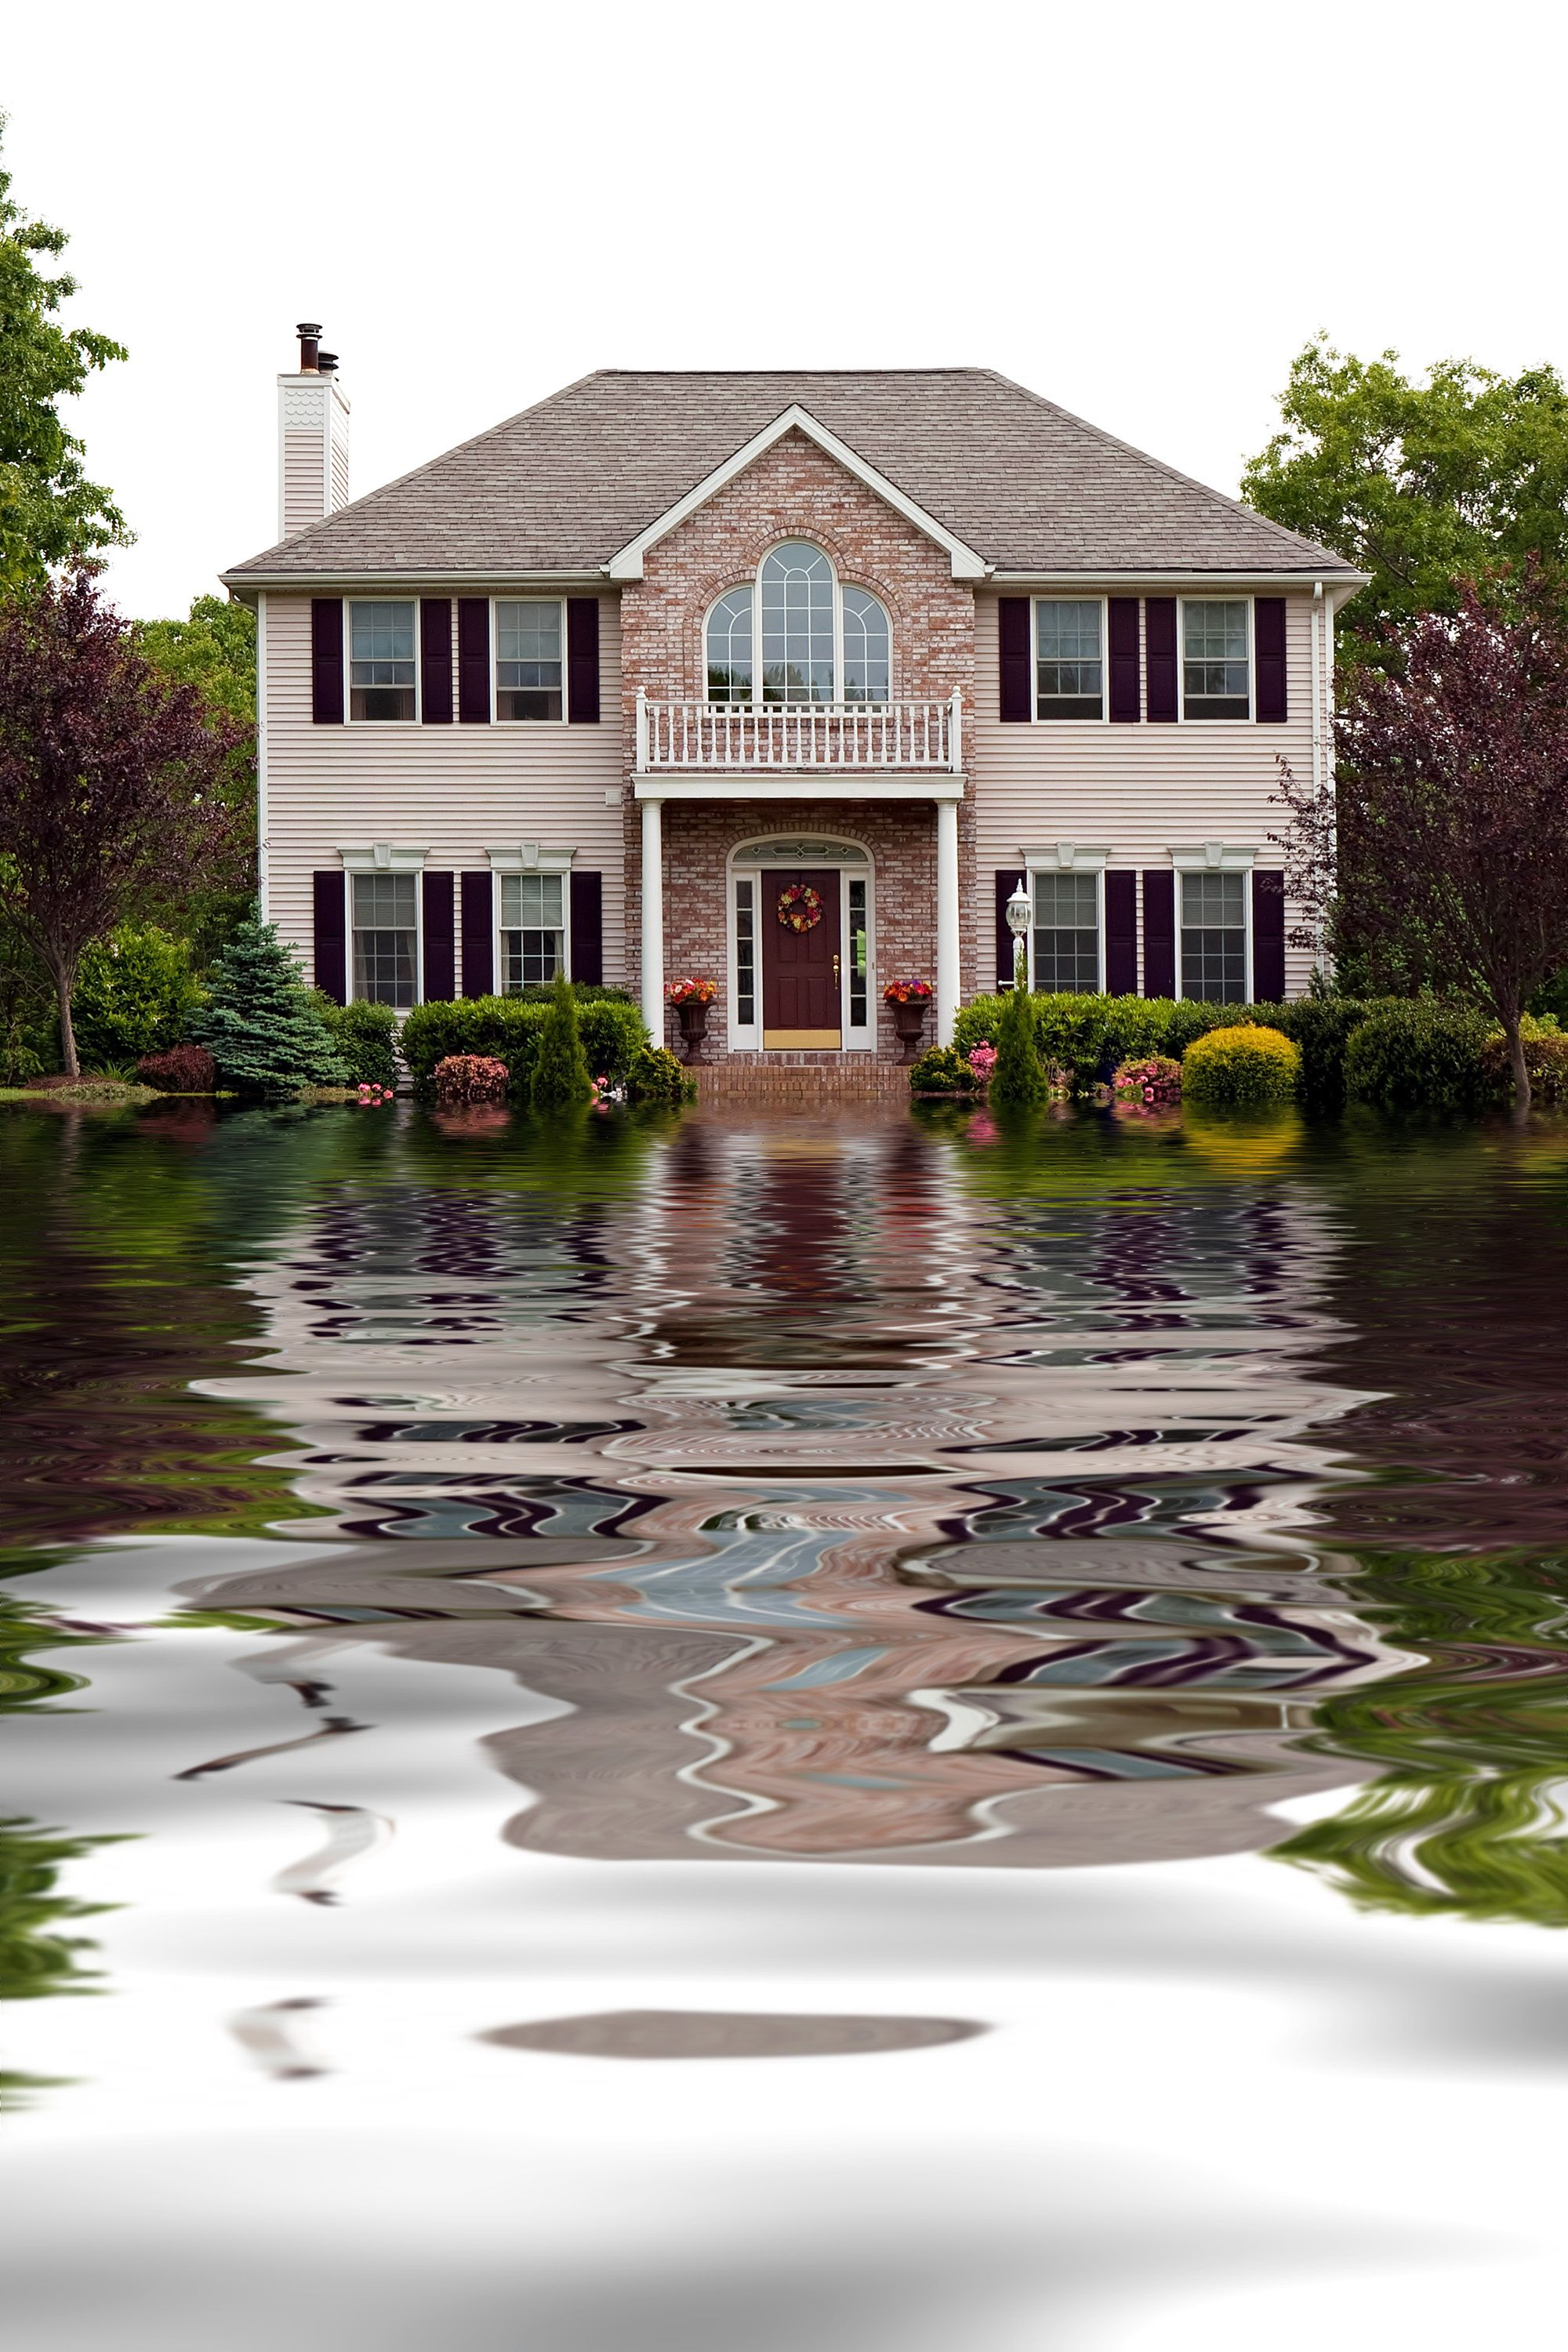 flood insurance is biggest fear in Houston, Texas. If